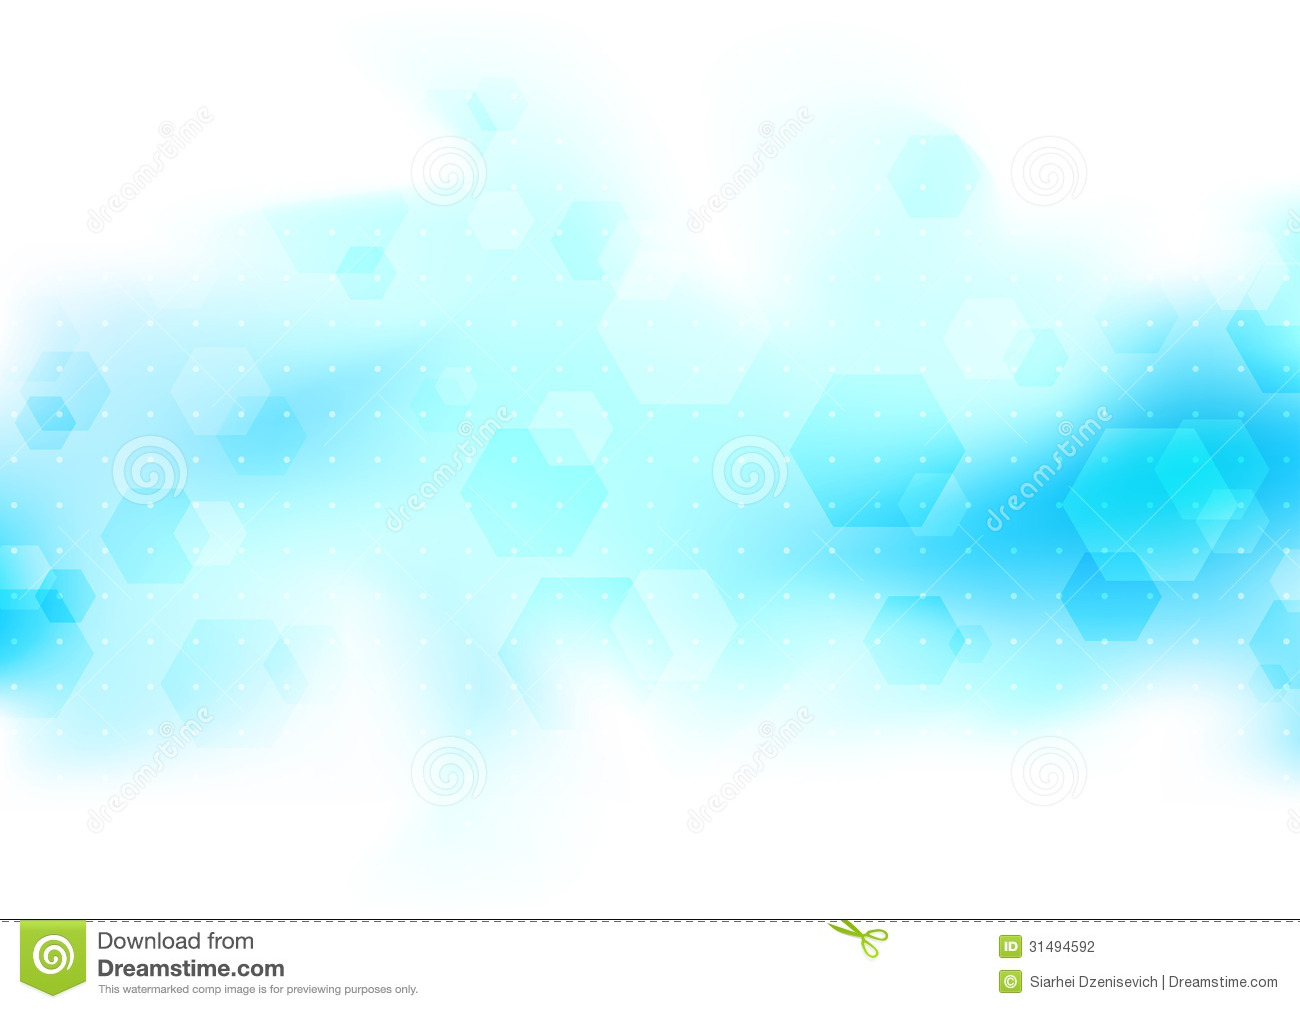 background image clipart - photo #40